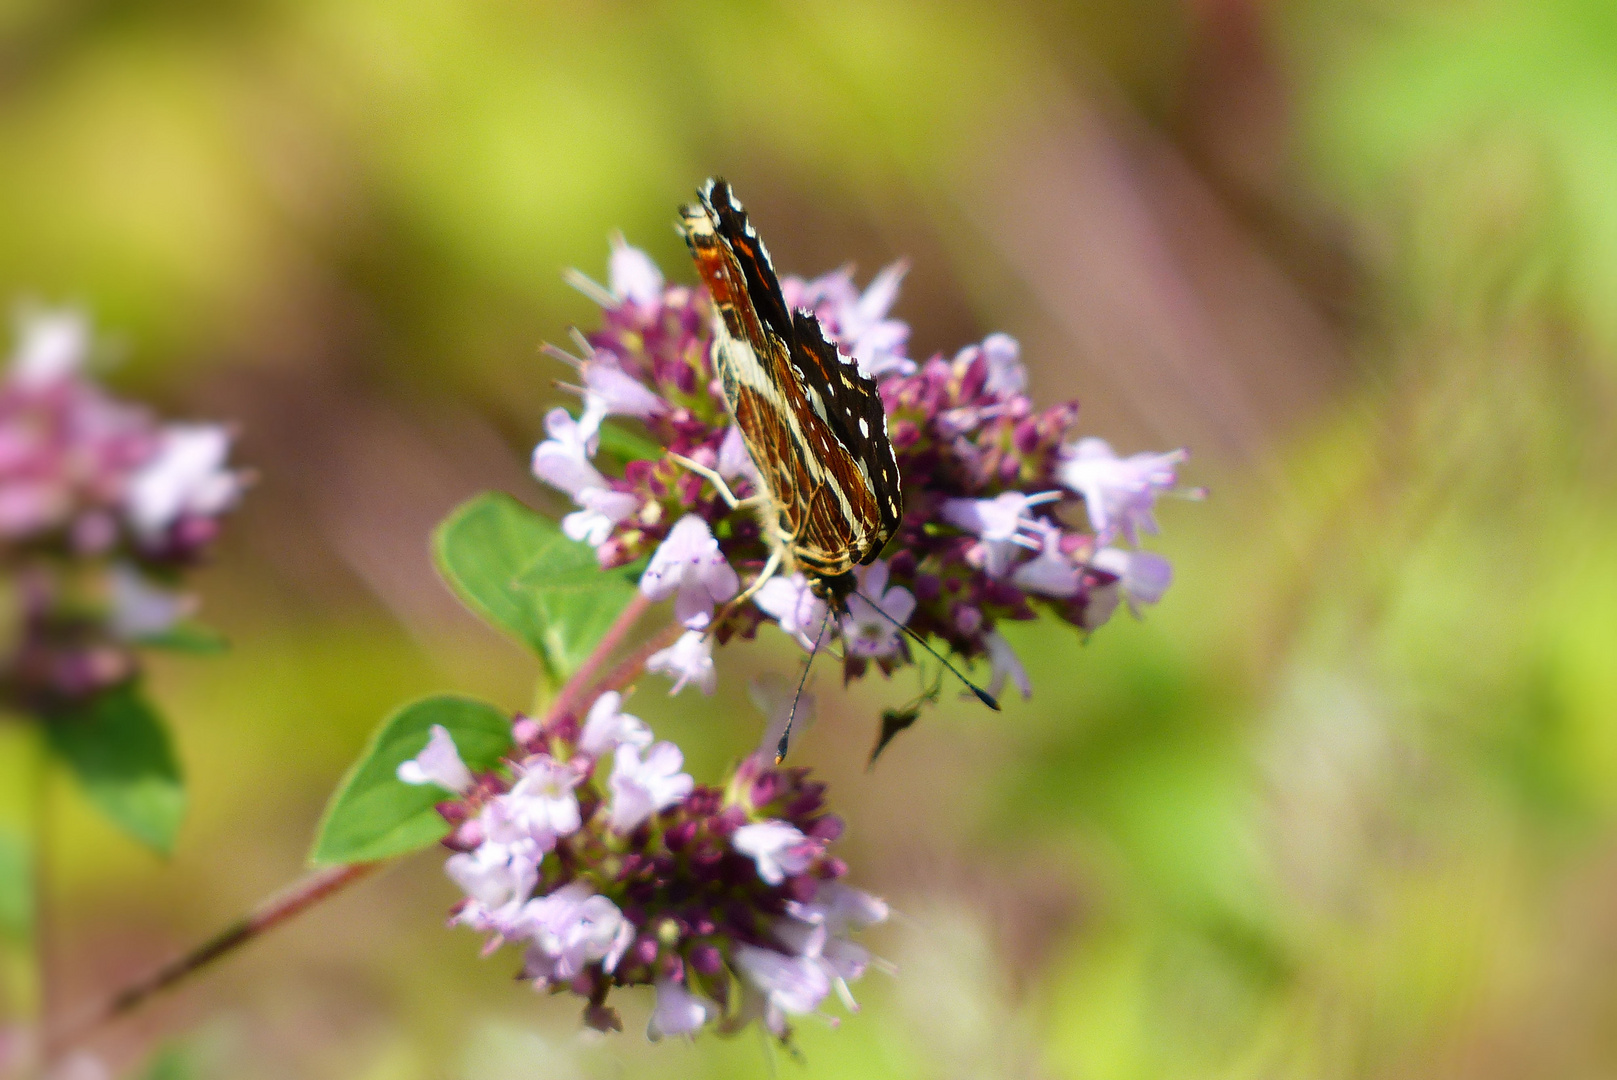 Butterfly with folded wings